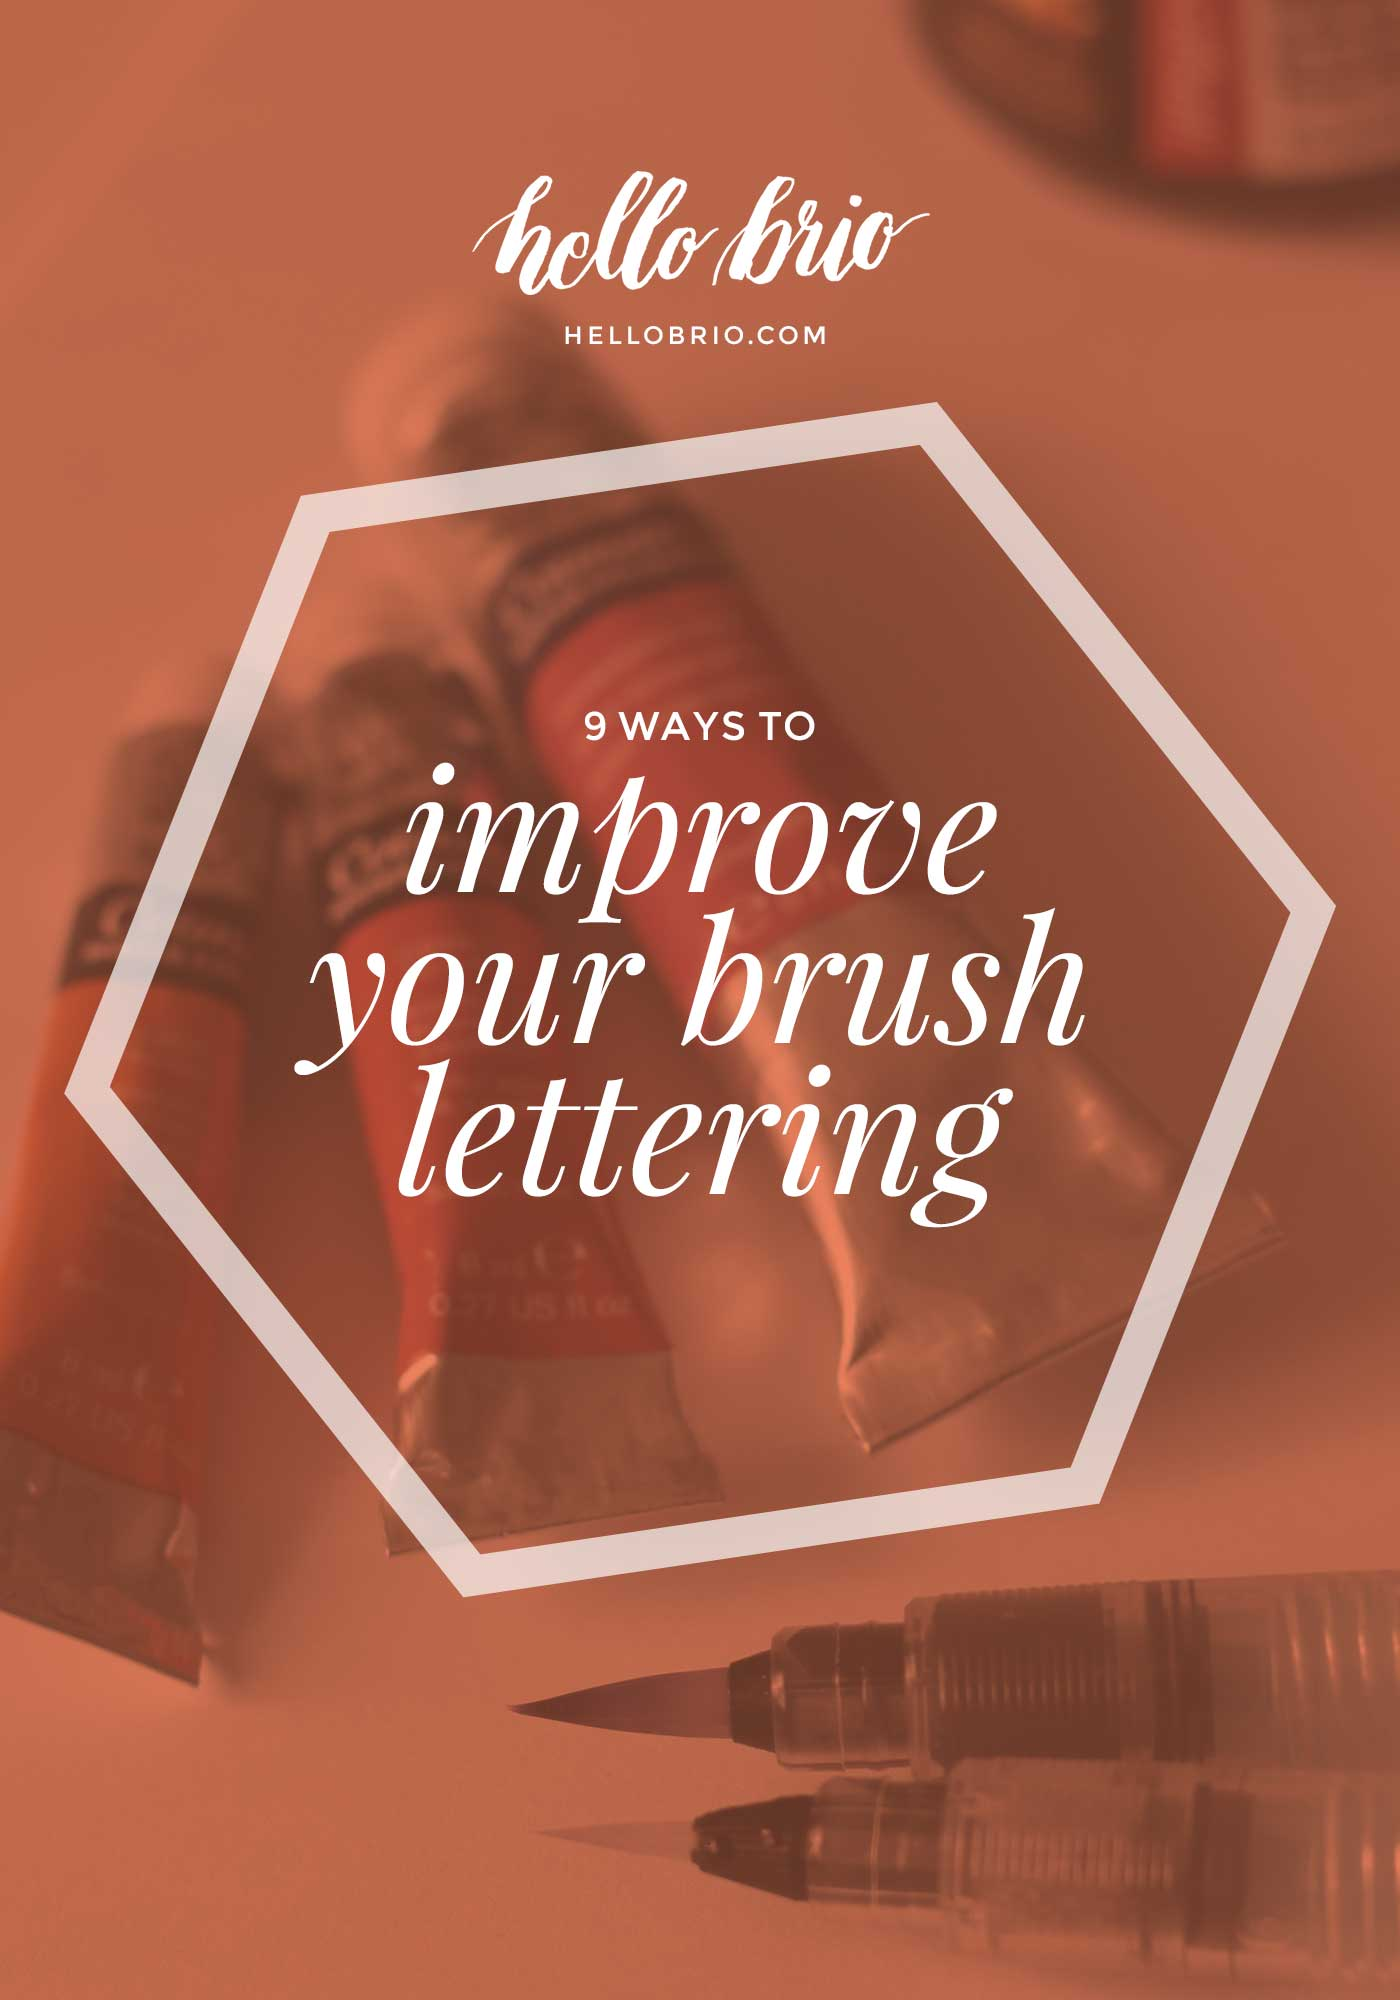 9 ways to improve your brush lettering